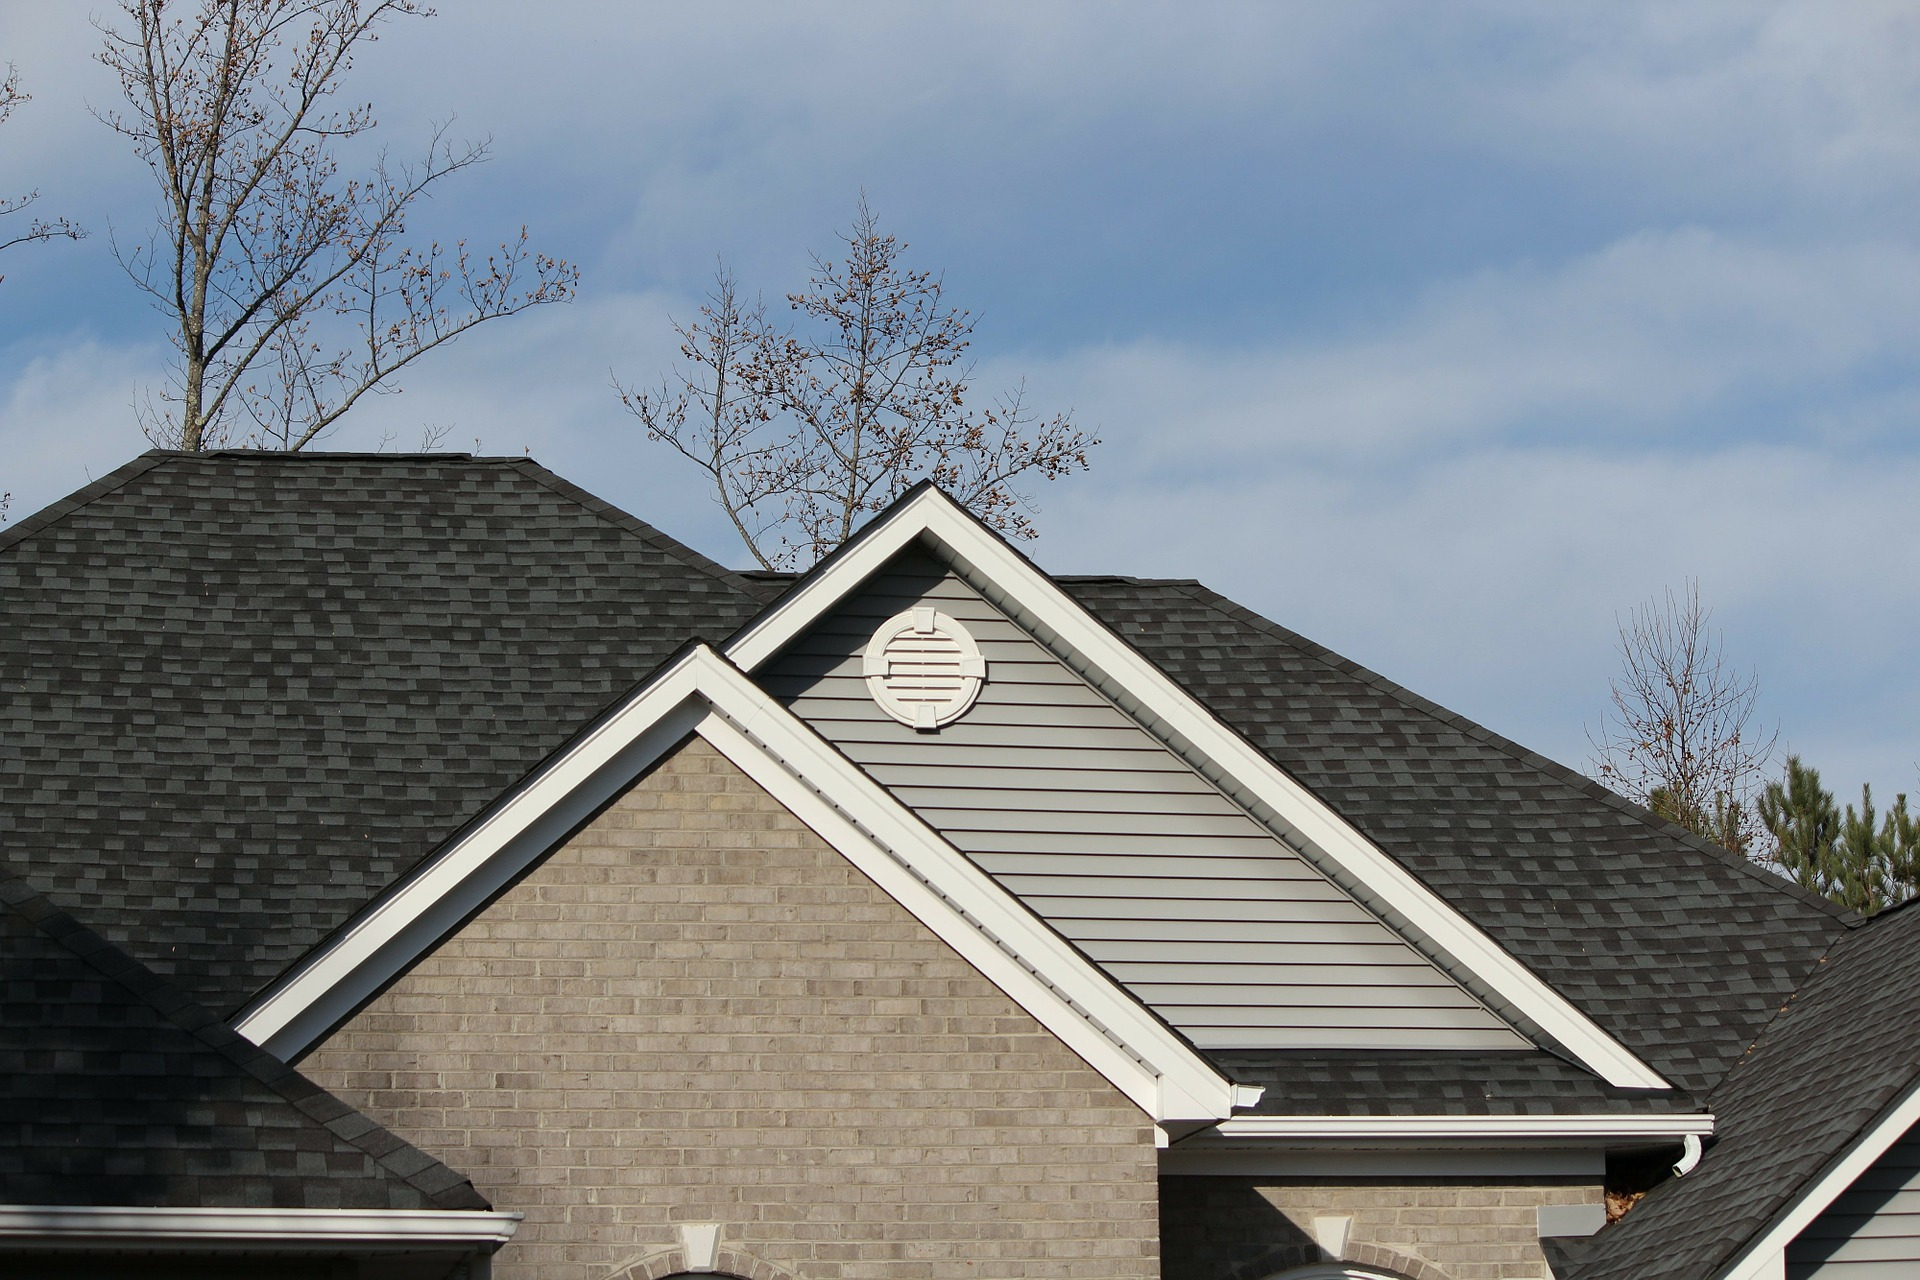 Residential Roofs - • Repair• New Installation